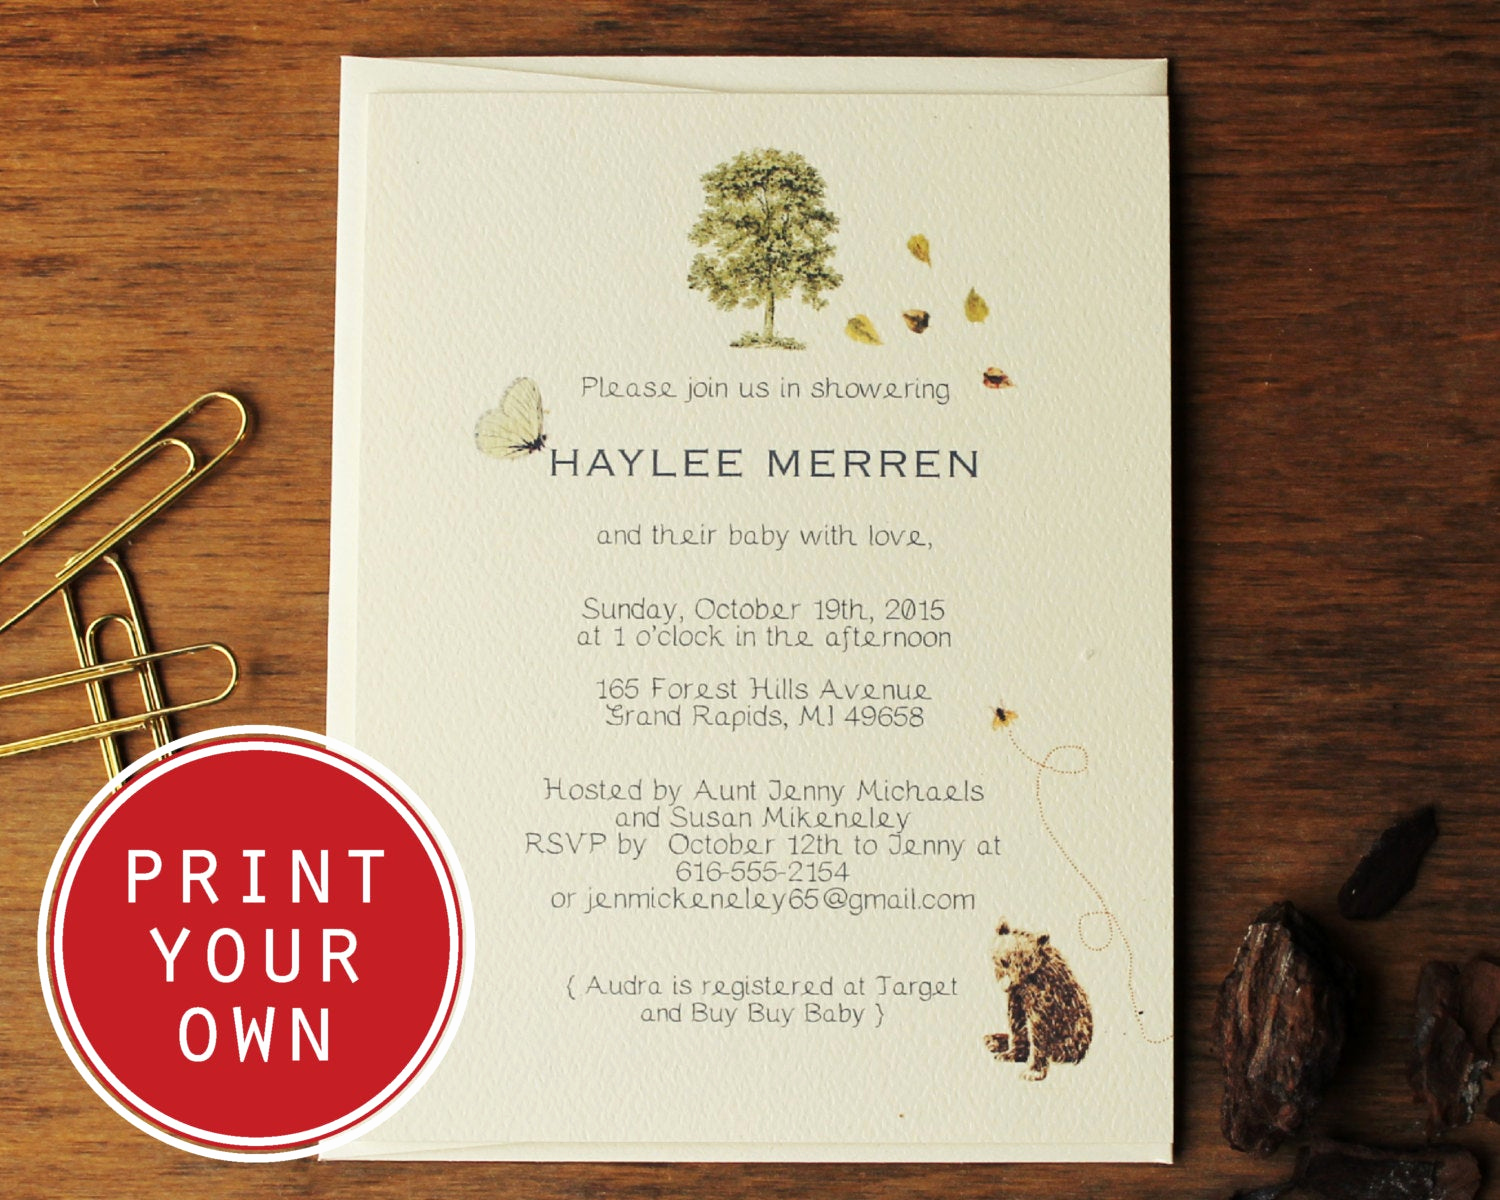 Woodland Baby Shower Invitation Elegant Woodland Baby Shower Invitation Diy Printable Vintage Baby